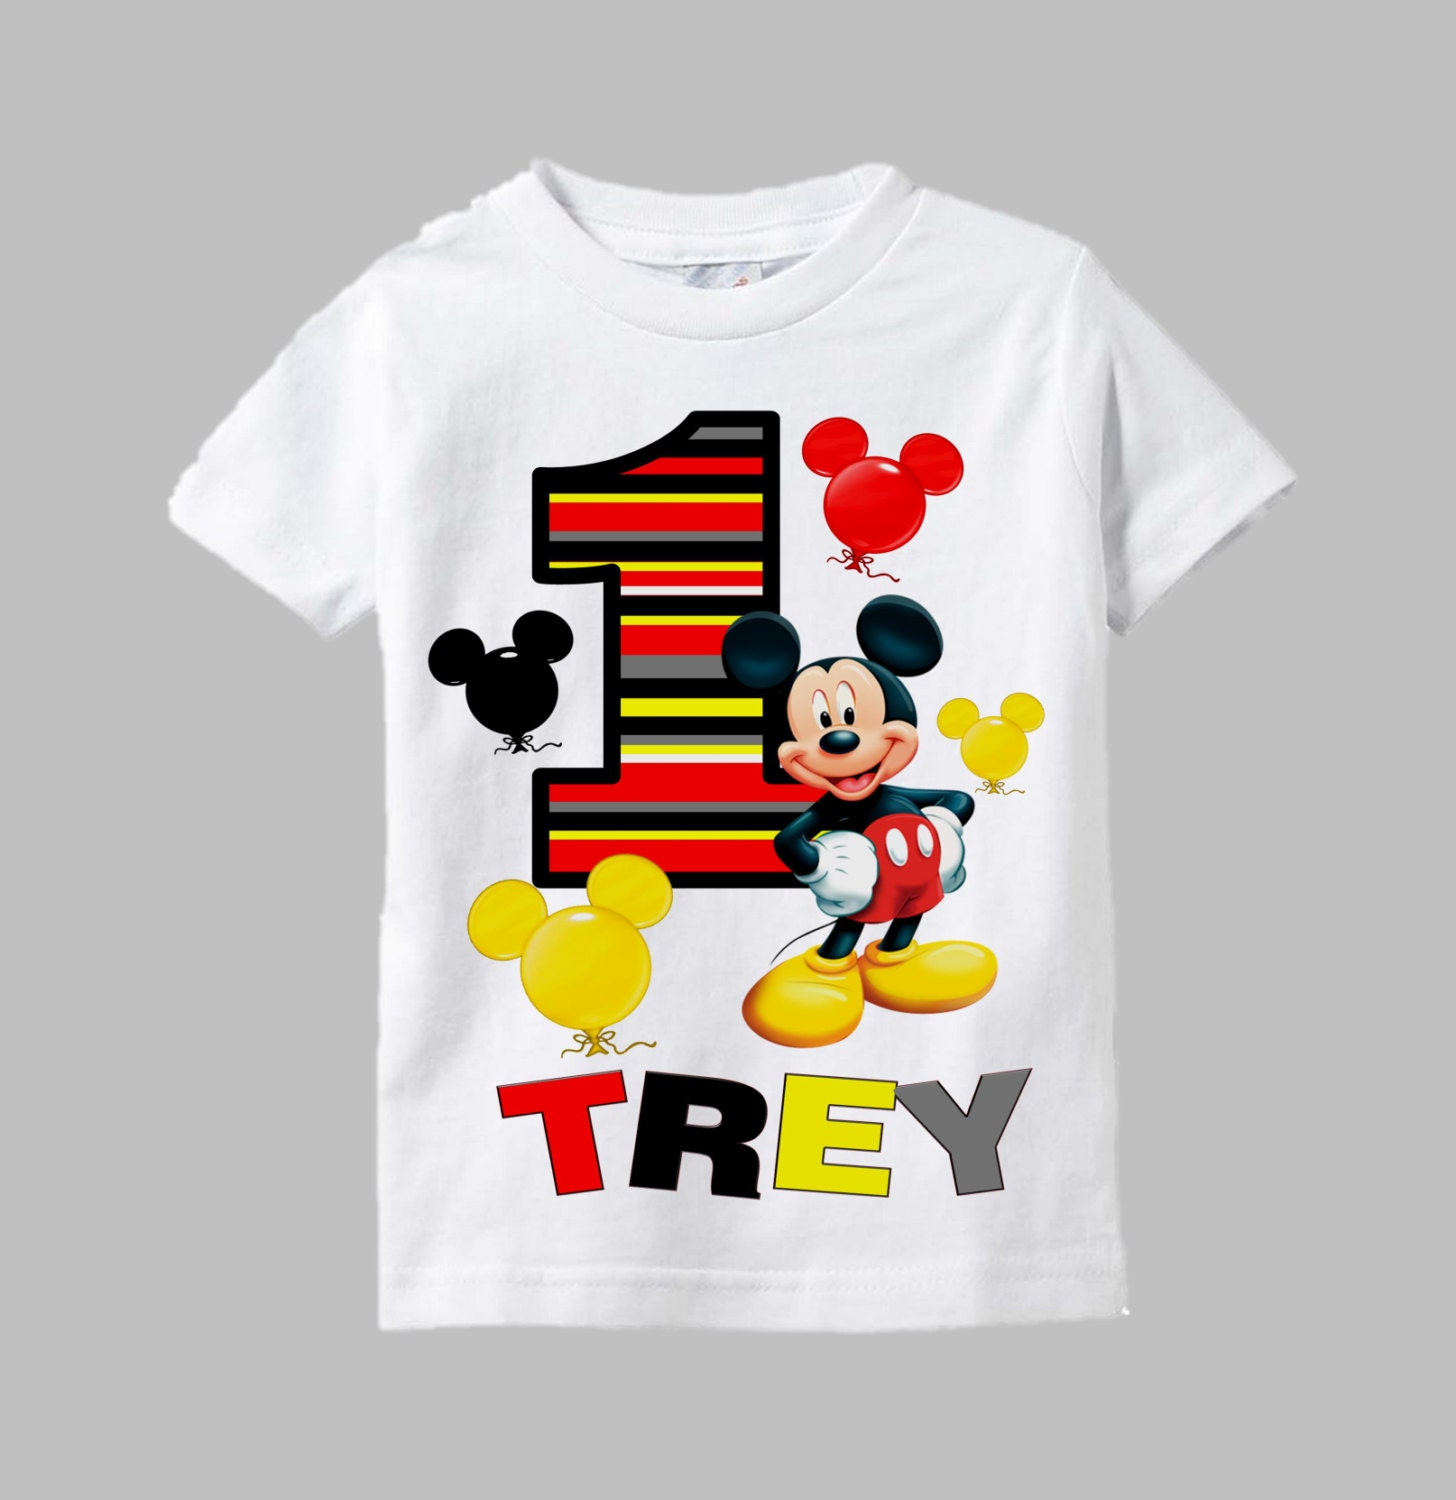 mickey mouse birthday shirt mickey mouse shirt mickey. Black Bedroom Furniture Sets. Home Design Ideas